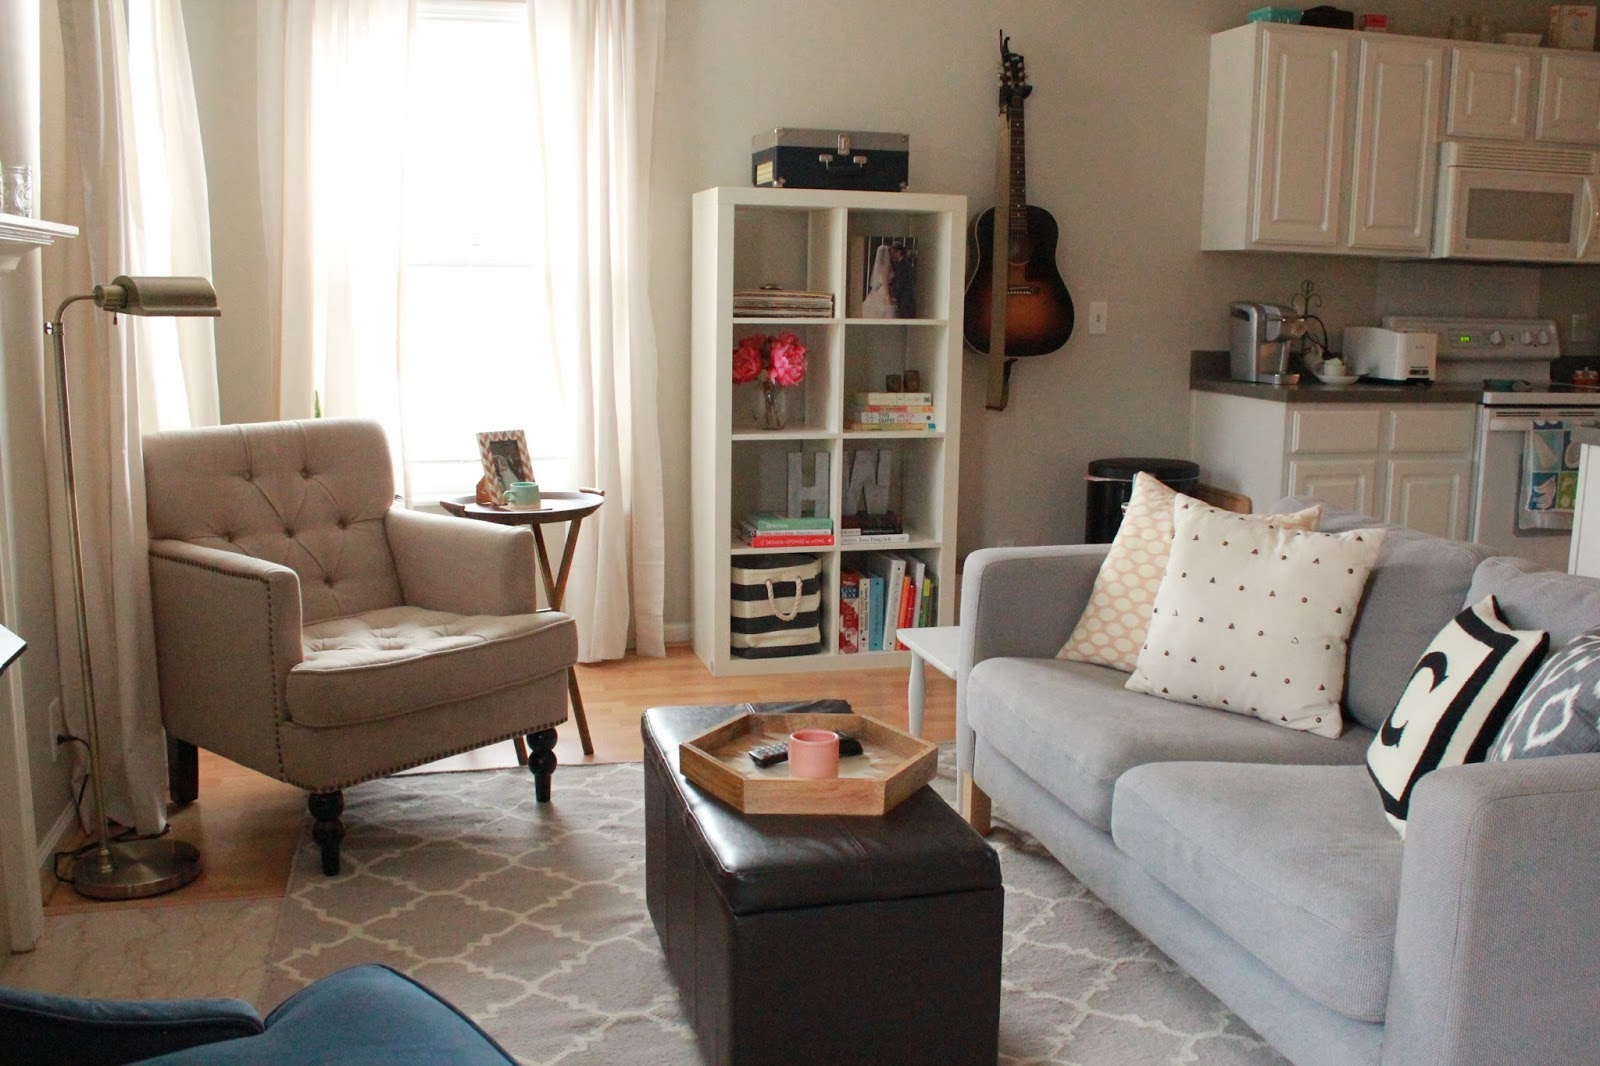 LIVING ROOM TOUR! | hollywouldblvd.com